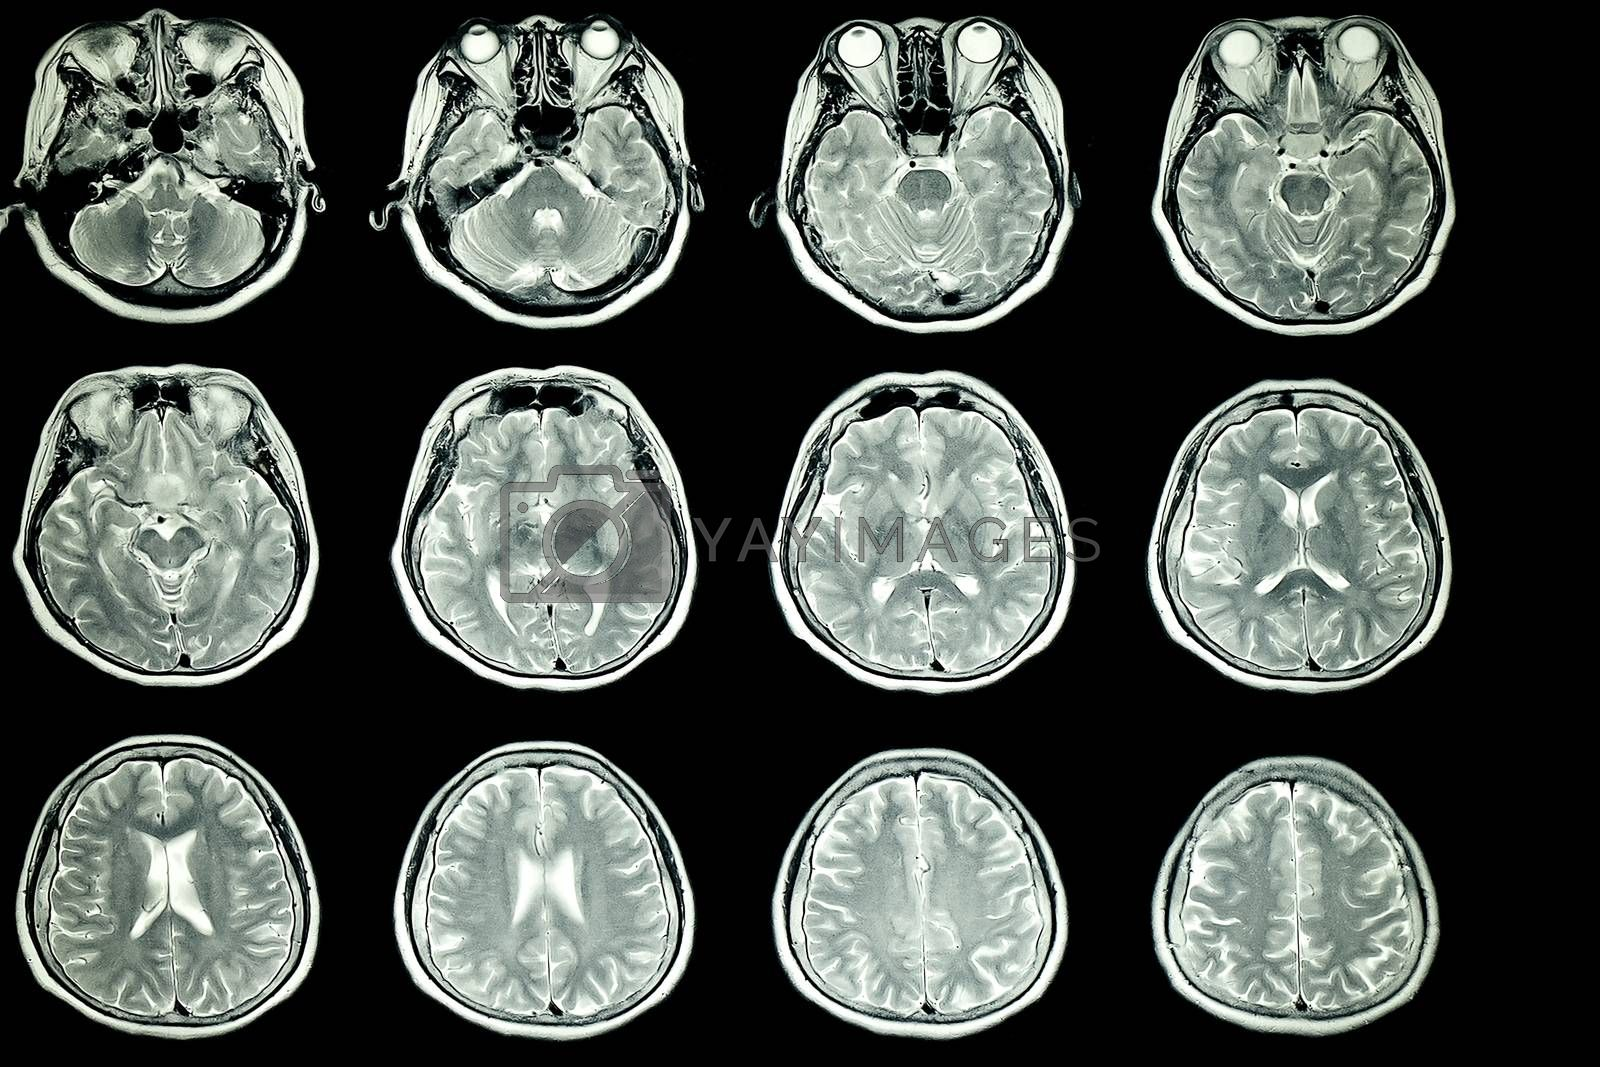 MRI scan of patient brain by Nawoot